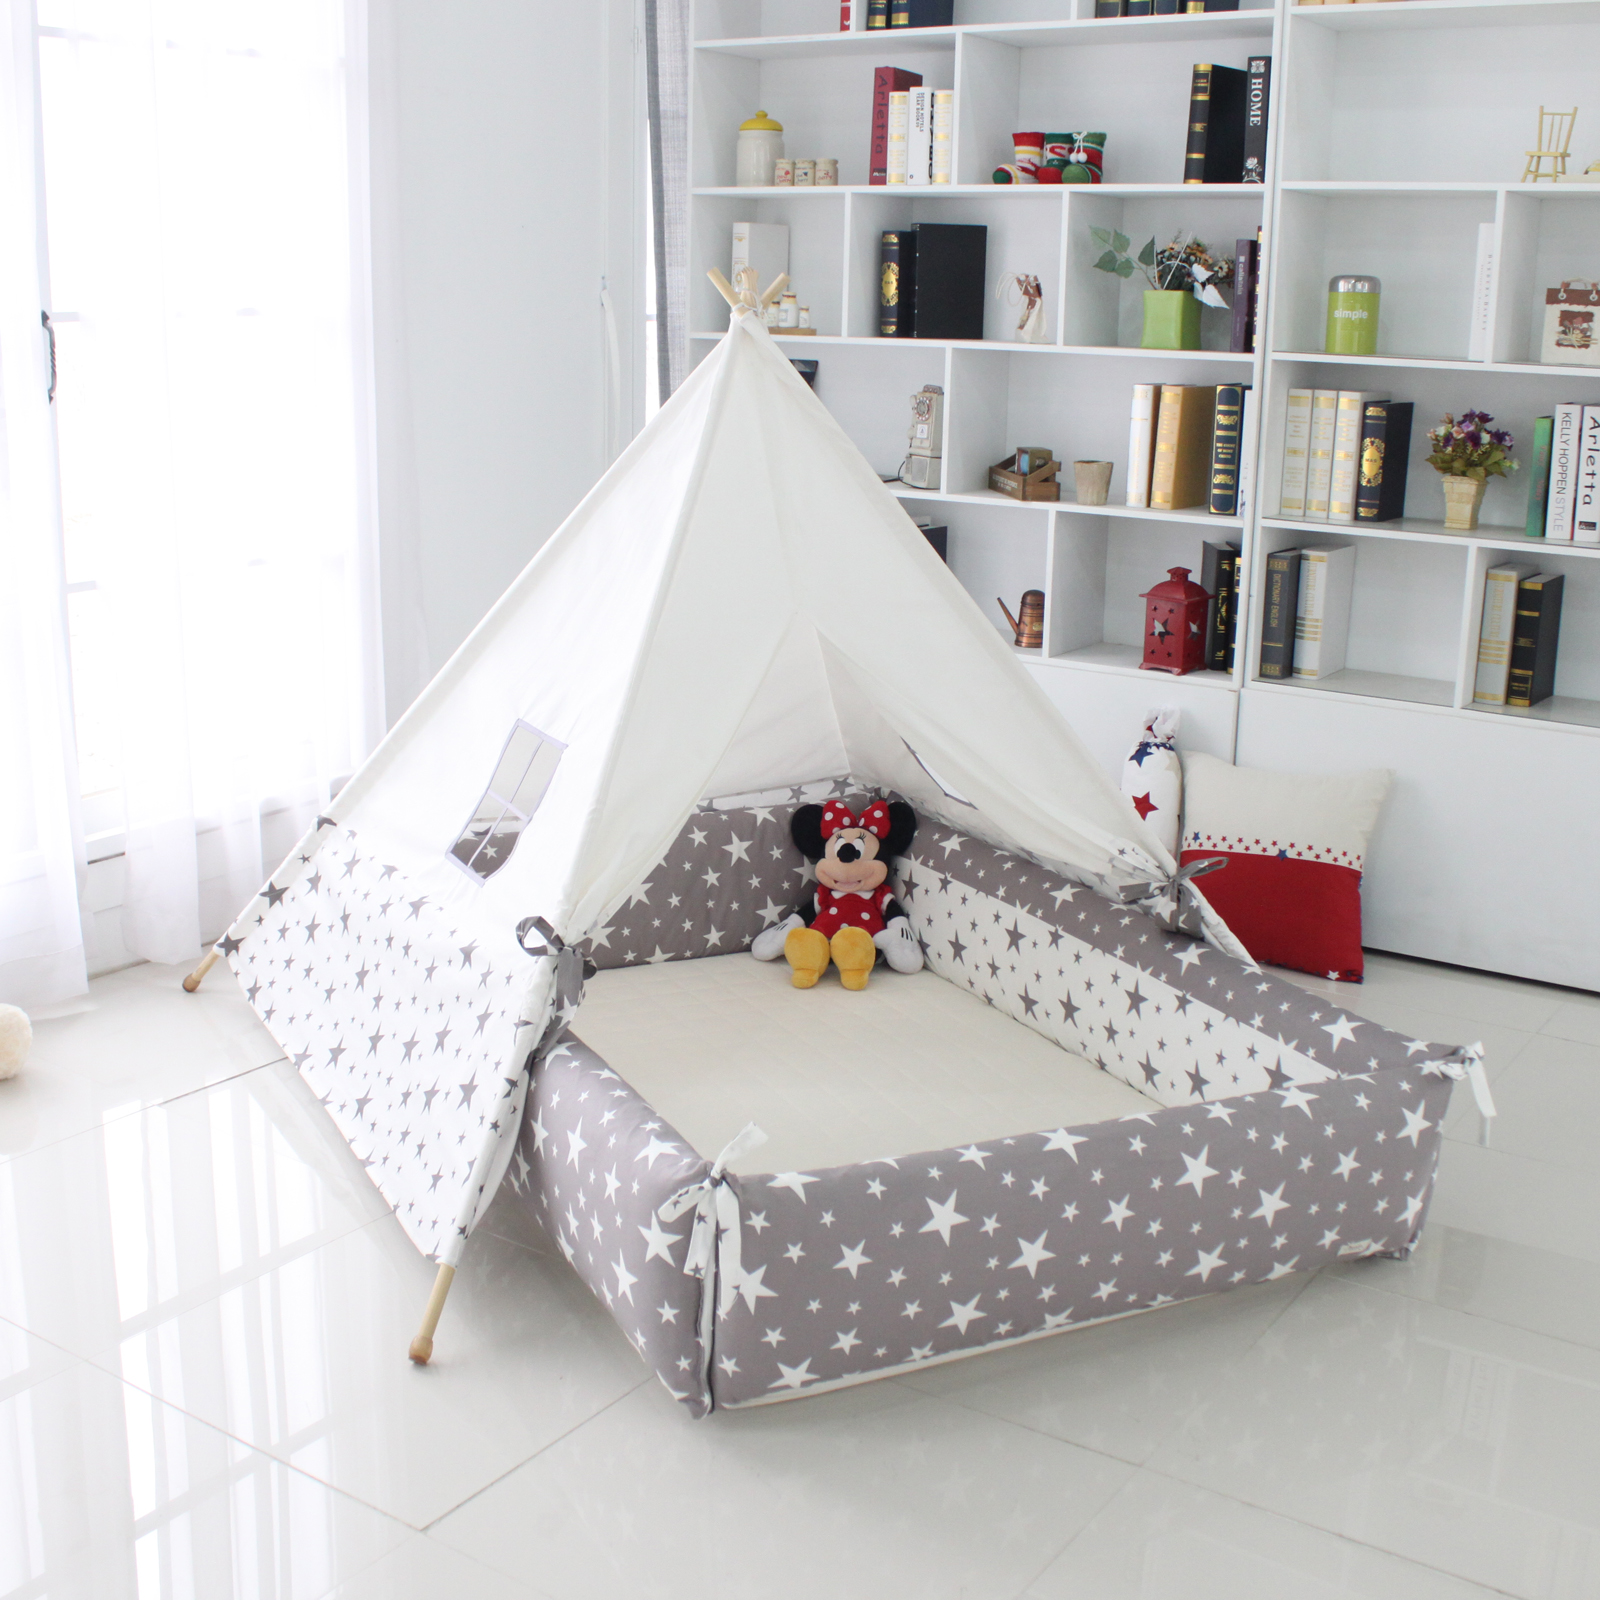 aguard teepee tent twinkle mummybebe. Black Bedroom Furniture Sets. Home Design Ideas